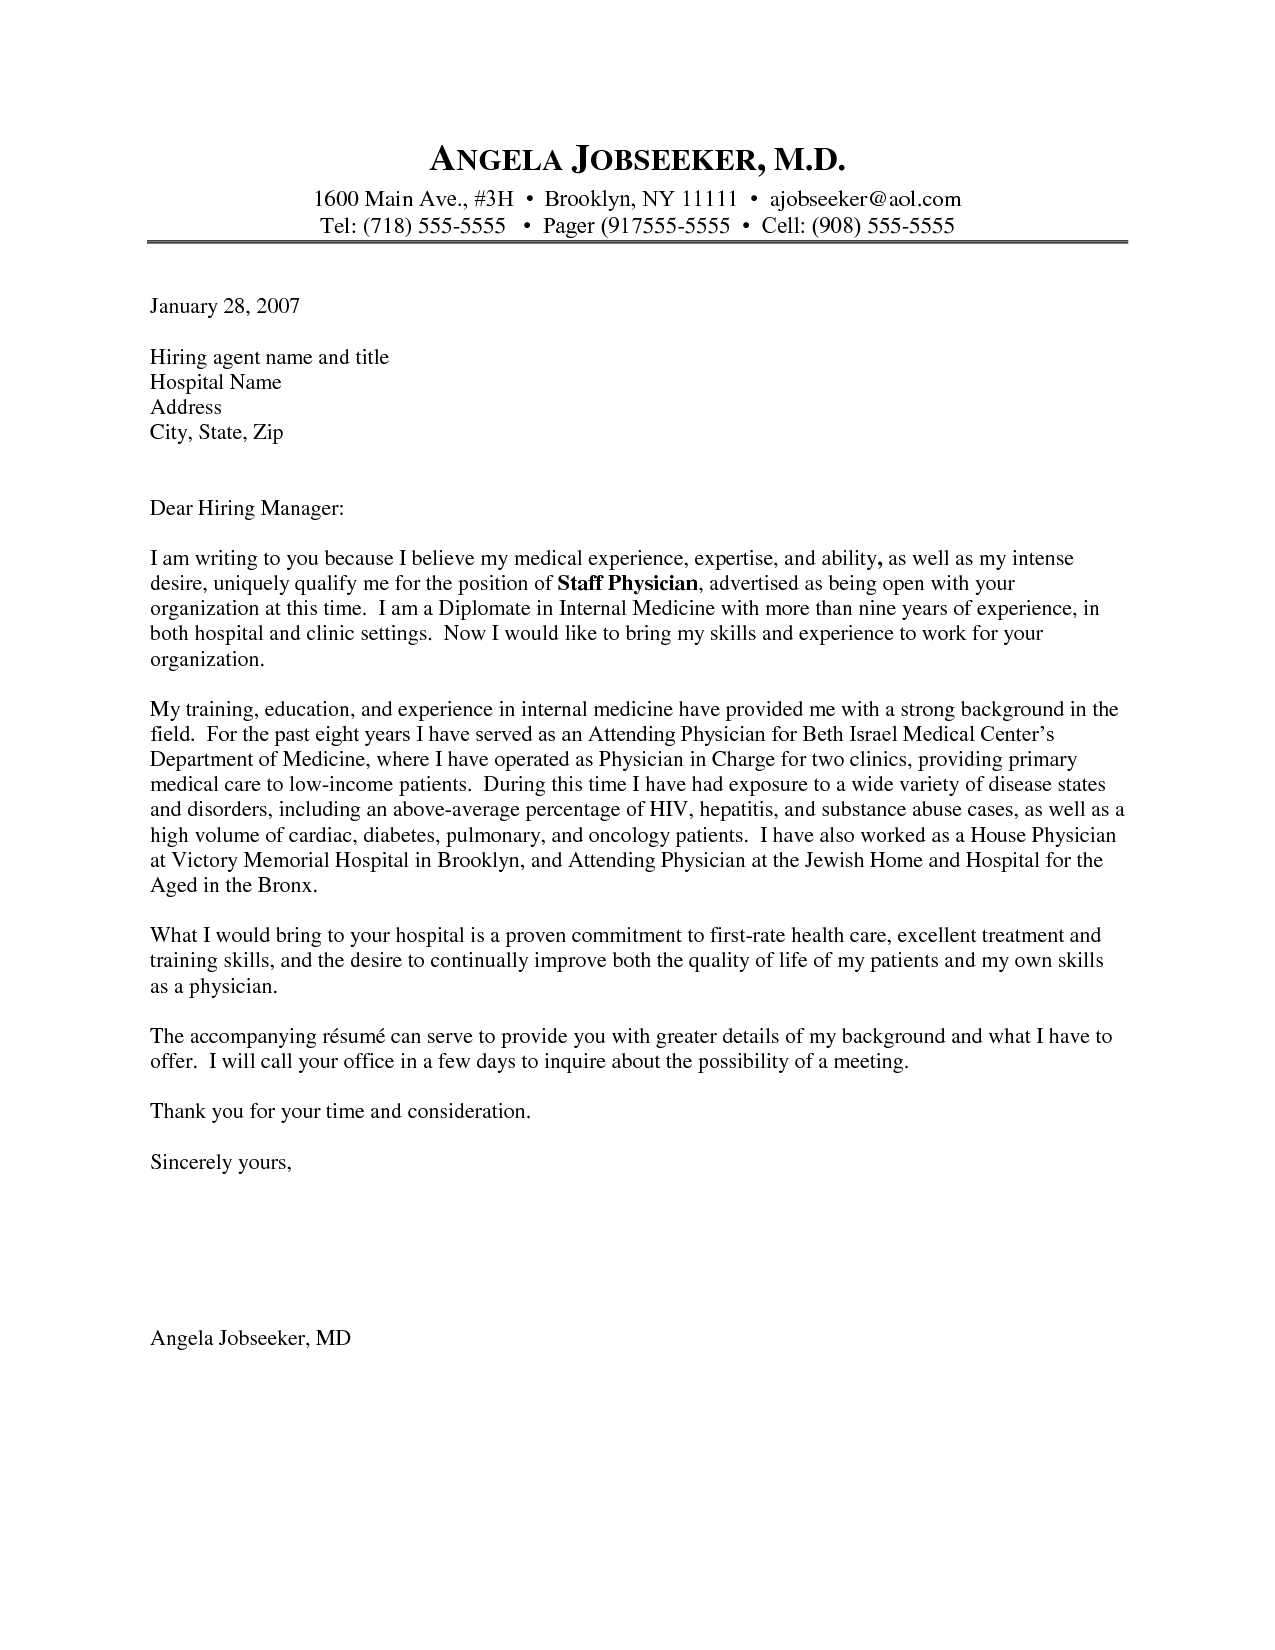 examples of medical coverletters doctor cover letter example